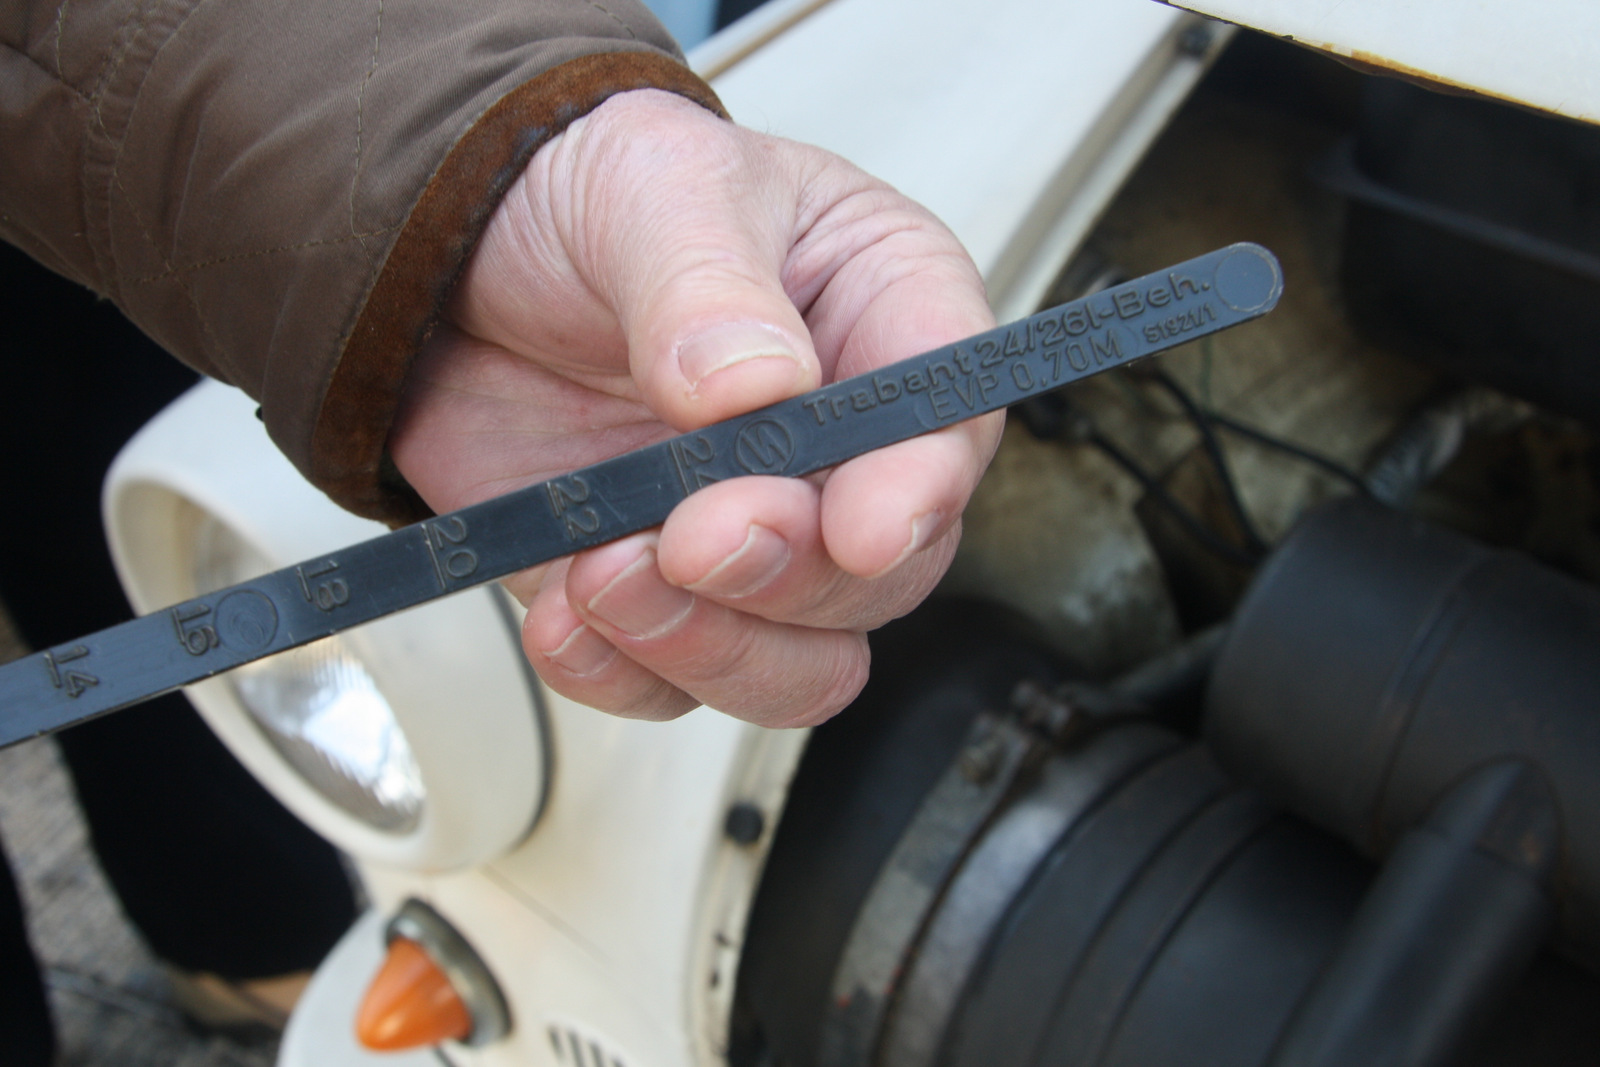 Most Trabants don't have fuel gauges. The motorist must check the fuel by opening the hood and using the supplied dipstick.